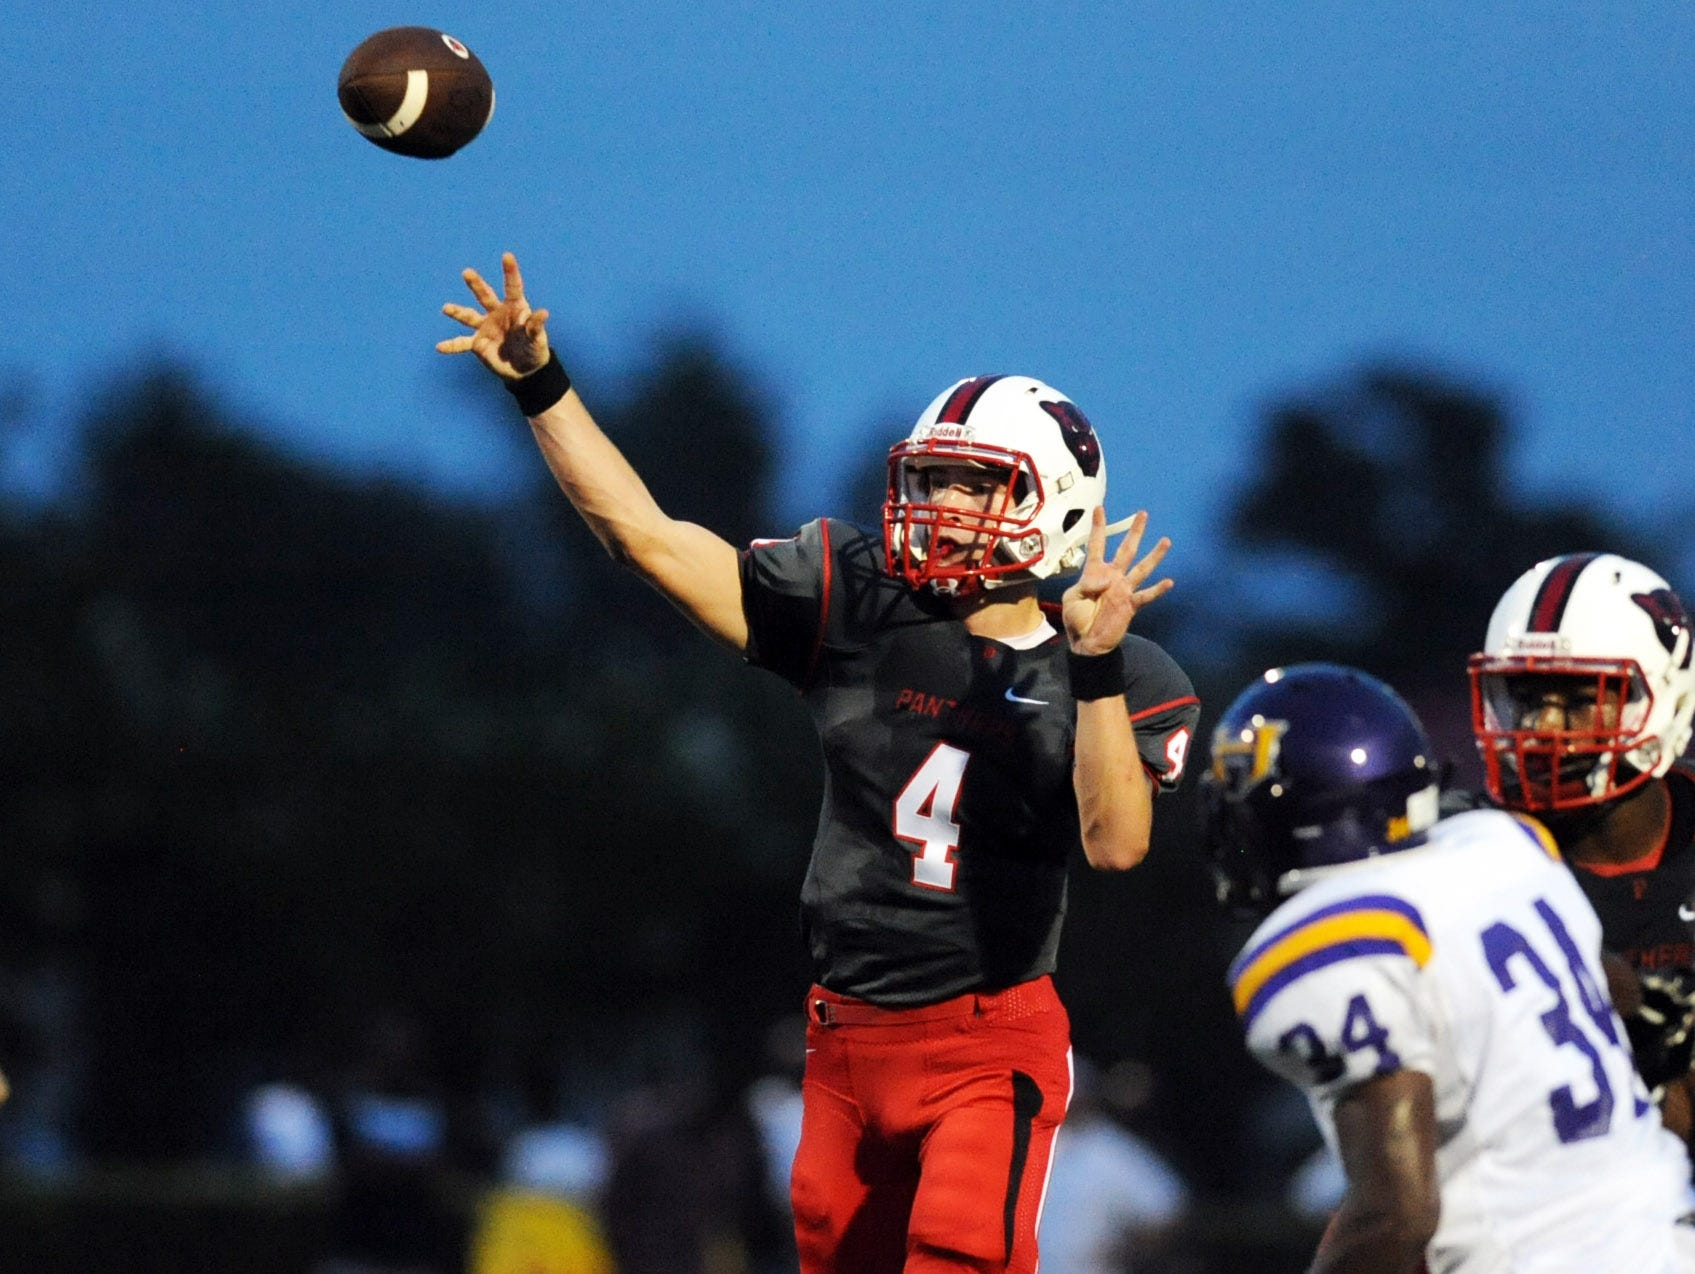 Petal quarterback Samuel Hopper will lead the Panthers against Meridian at 7 p.m. Friday in the Class 6A South State Championship.